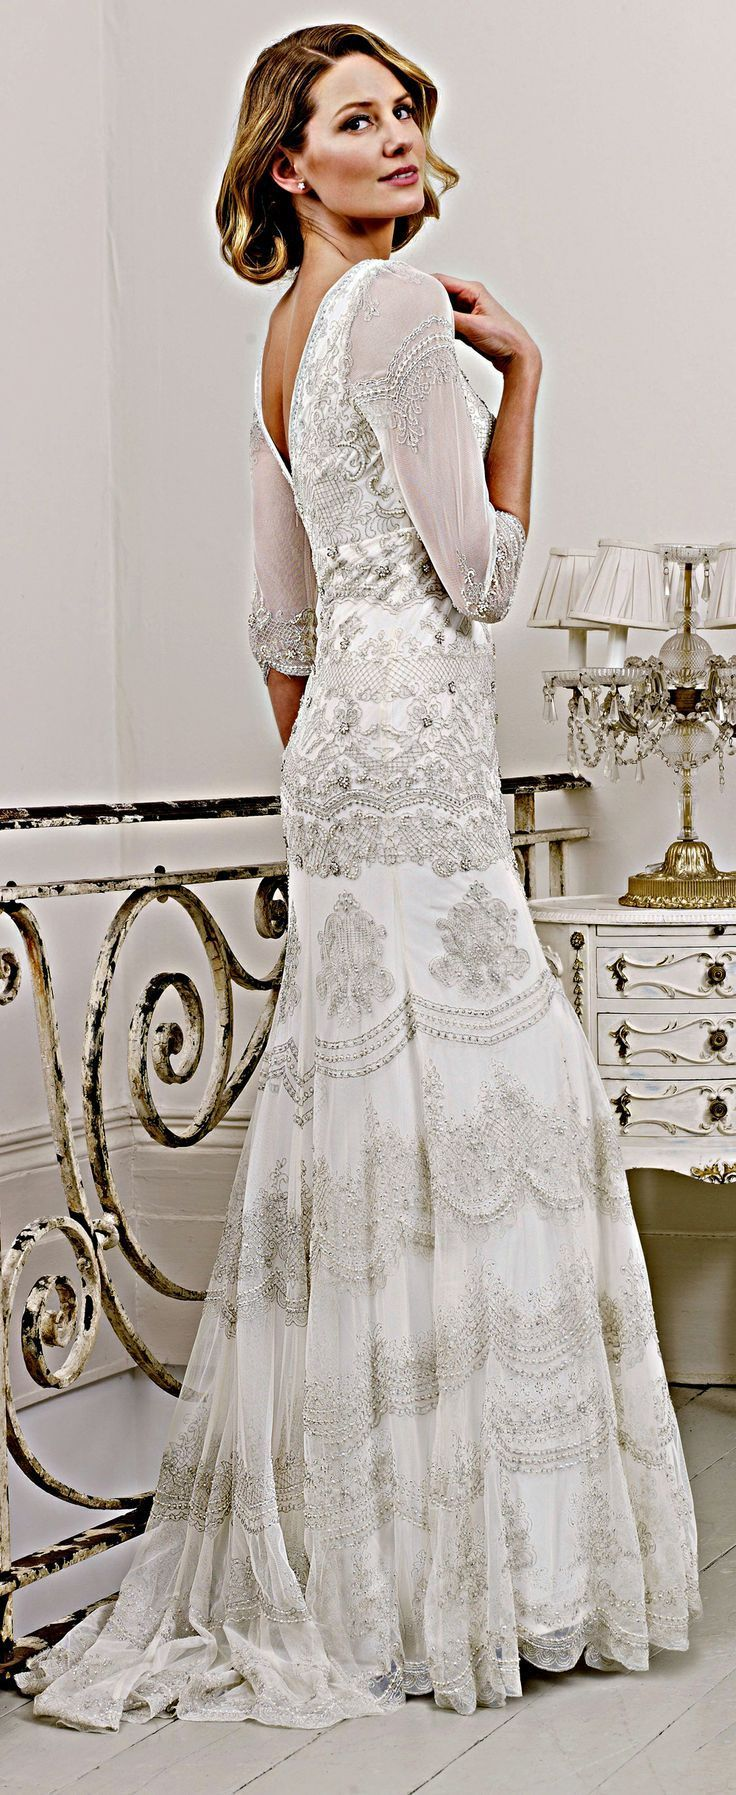 3d2c338b27 Wedding Dresses for 50 Year Old - Dresses for Wedding Reception Check more  at http